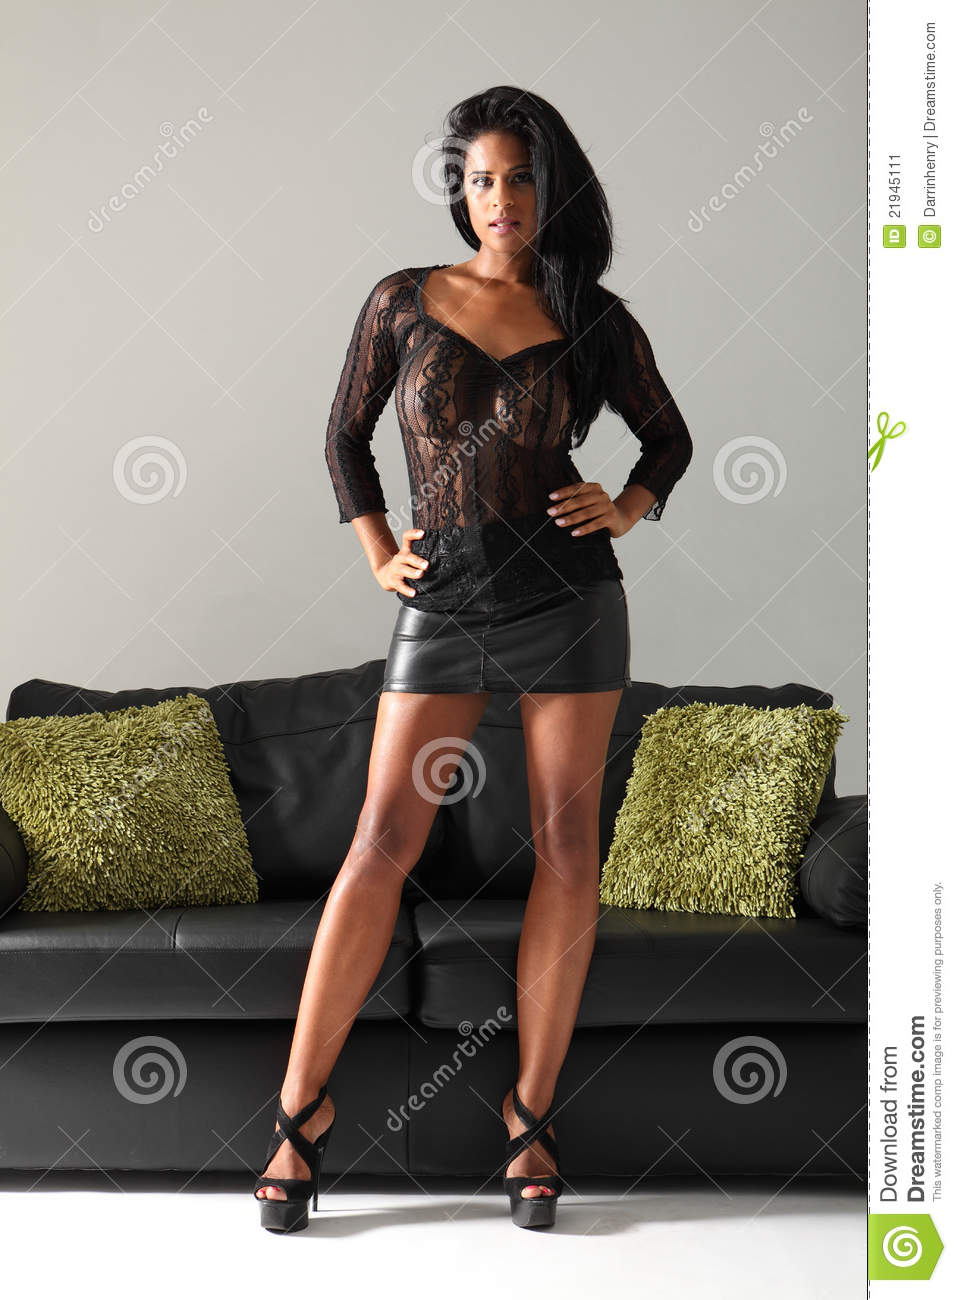 Beautiful Fashion Model In Short Leather Skirt Stock Image - Image ...